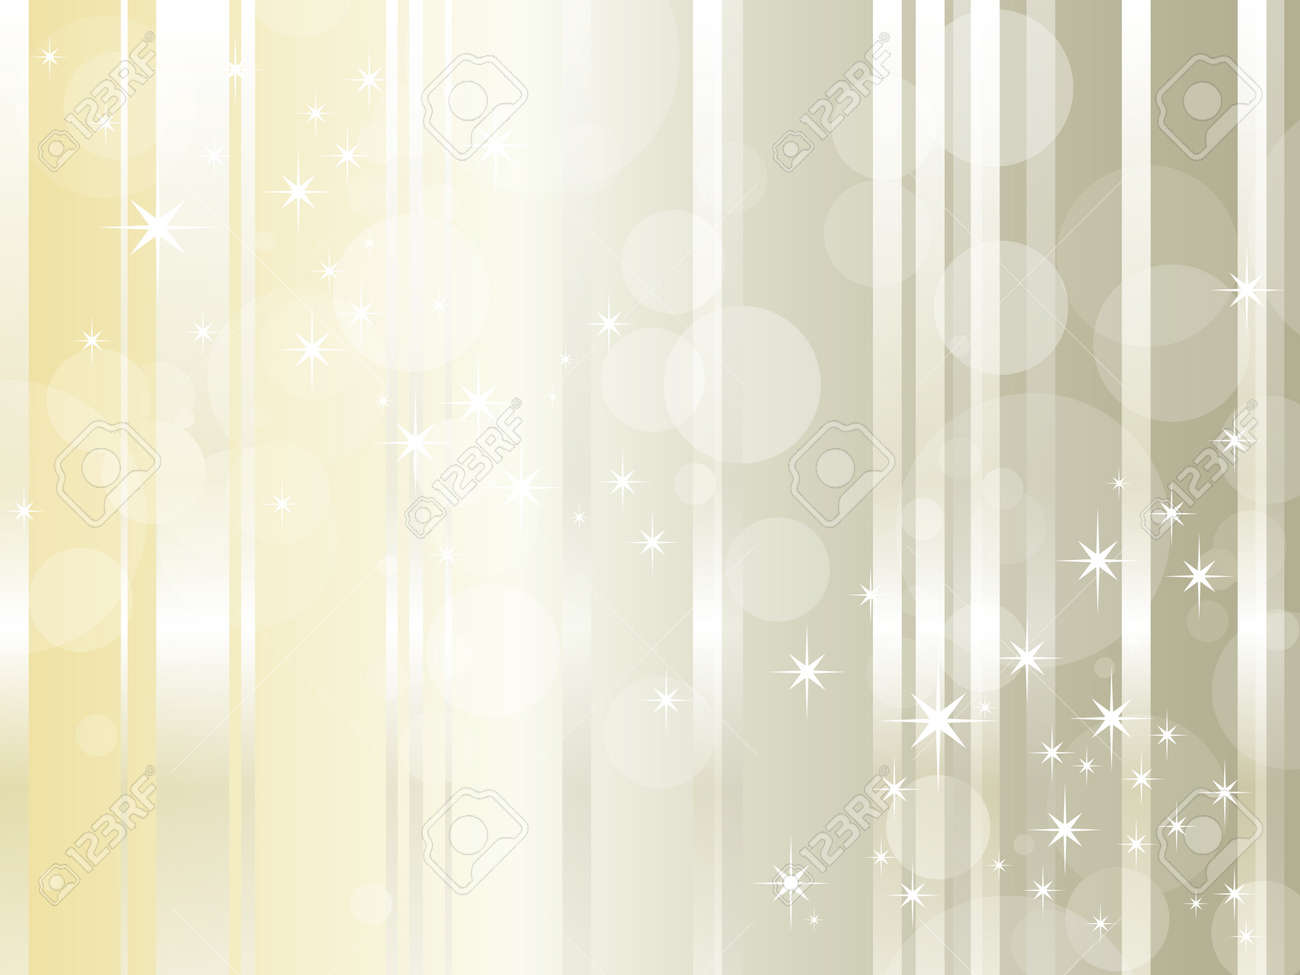 Abstract background design with glossy lines and shiny stars - luxury style - elegant Christmas backdrop with copy space Stock Vector - 10468492